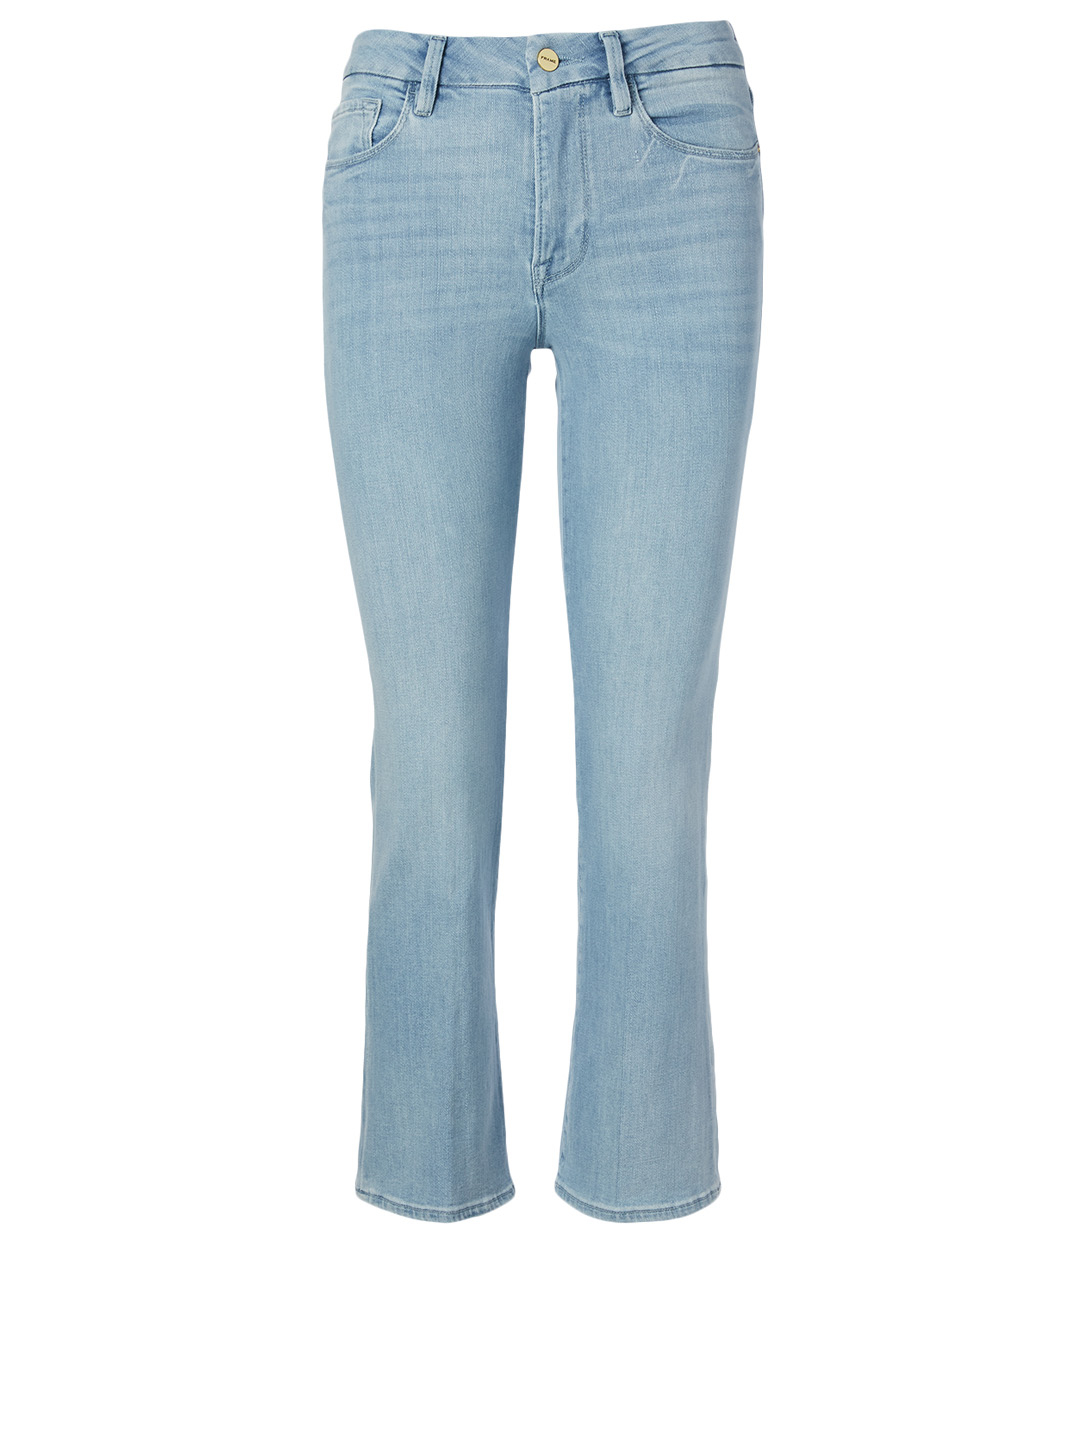 FRAME Le Crop Mini Boot Jeans Women's Blue